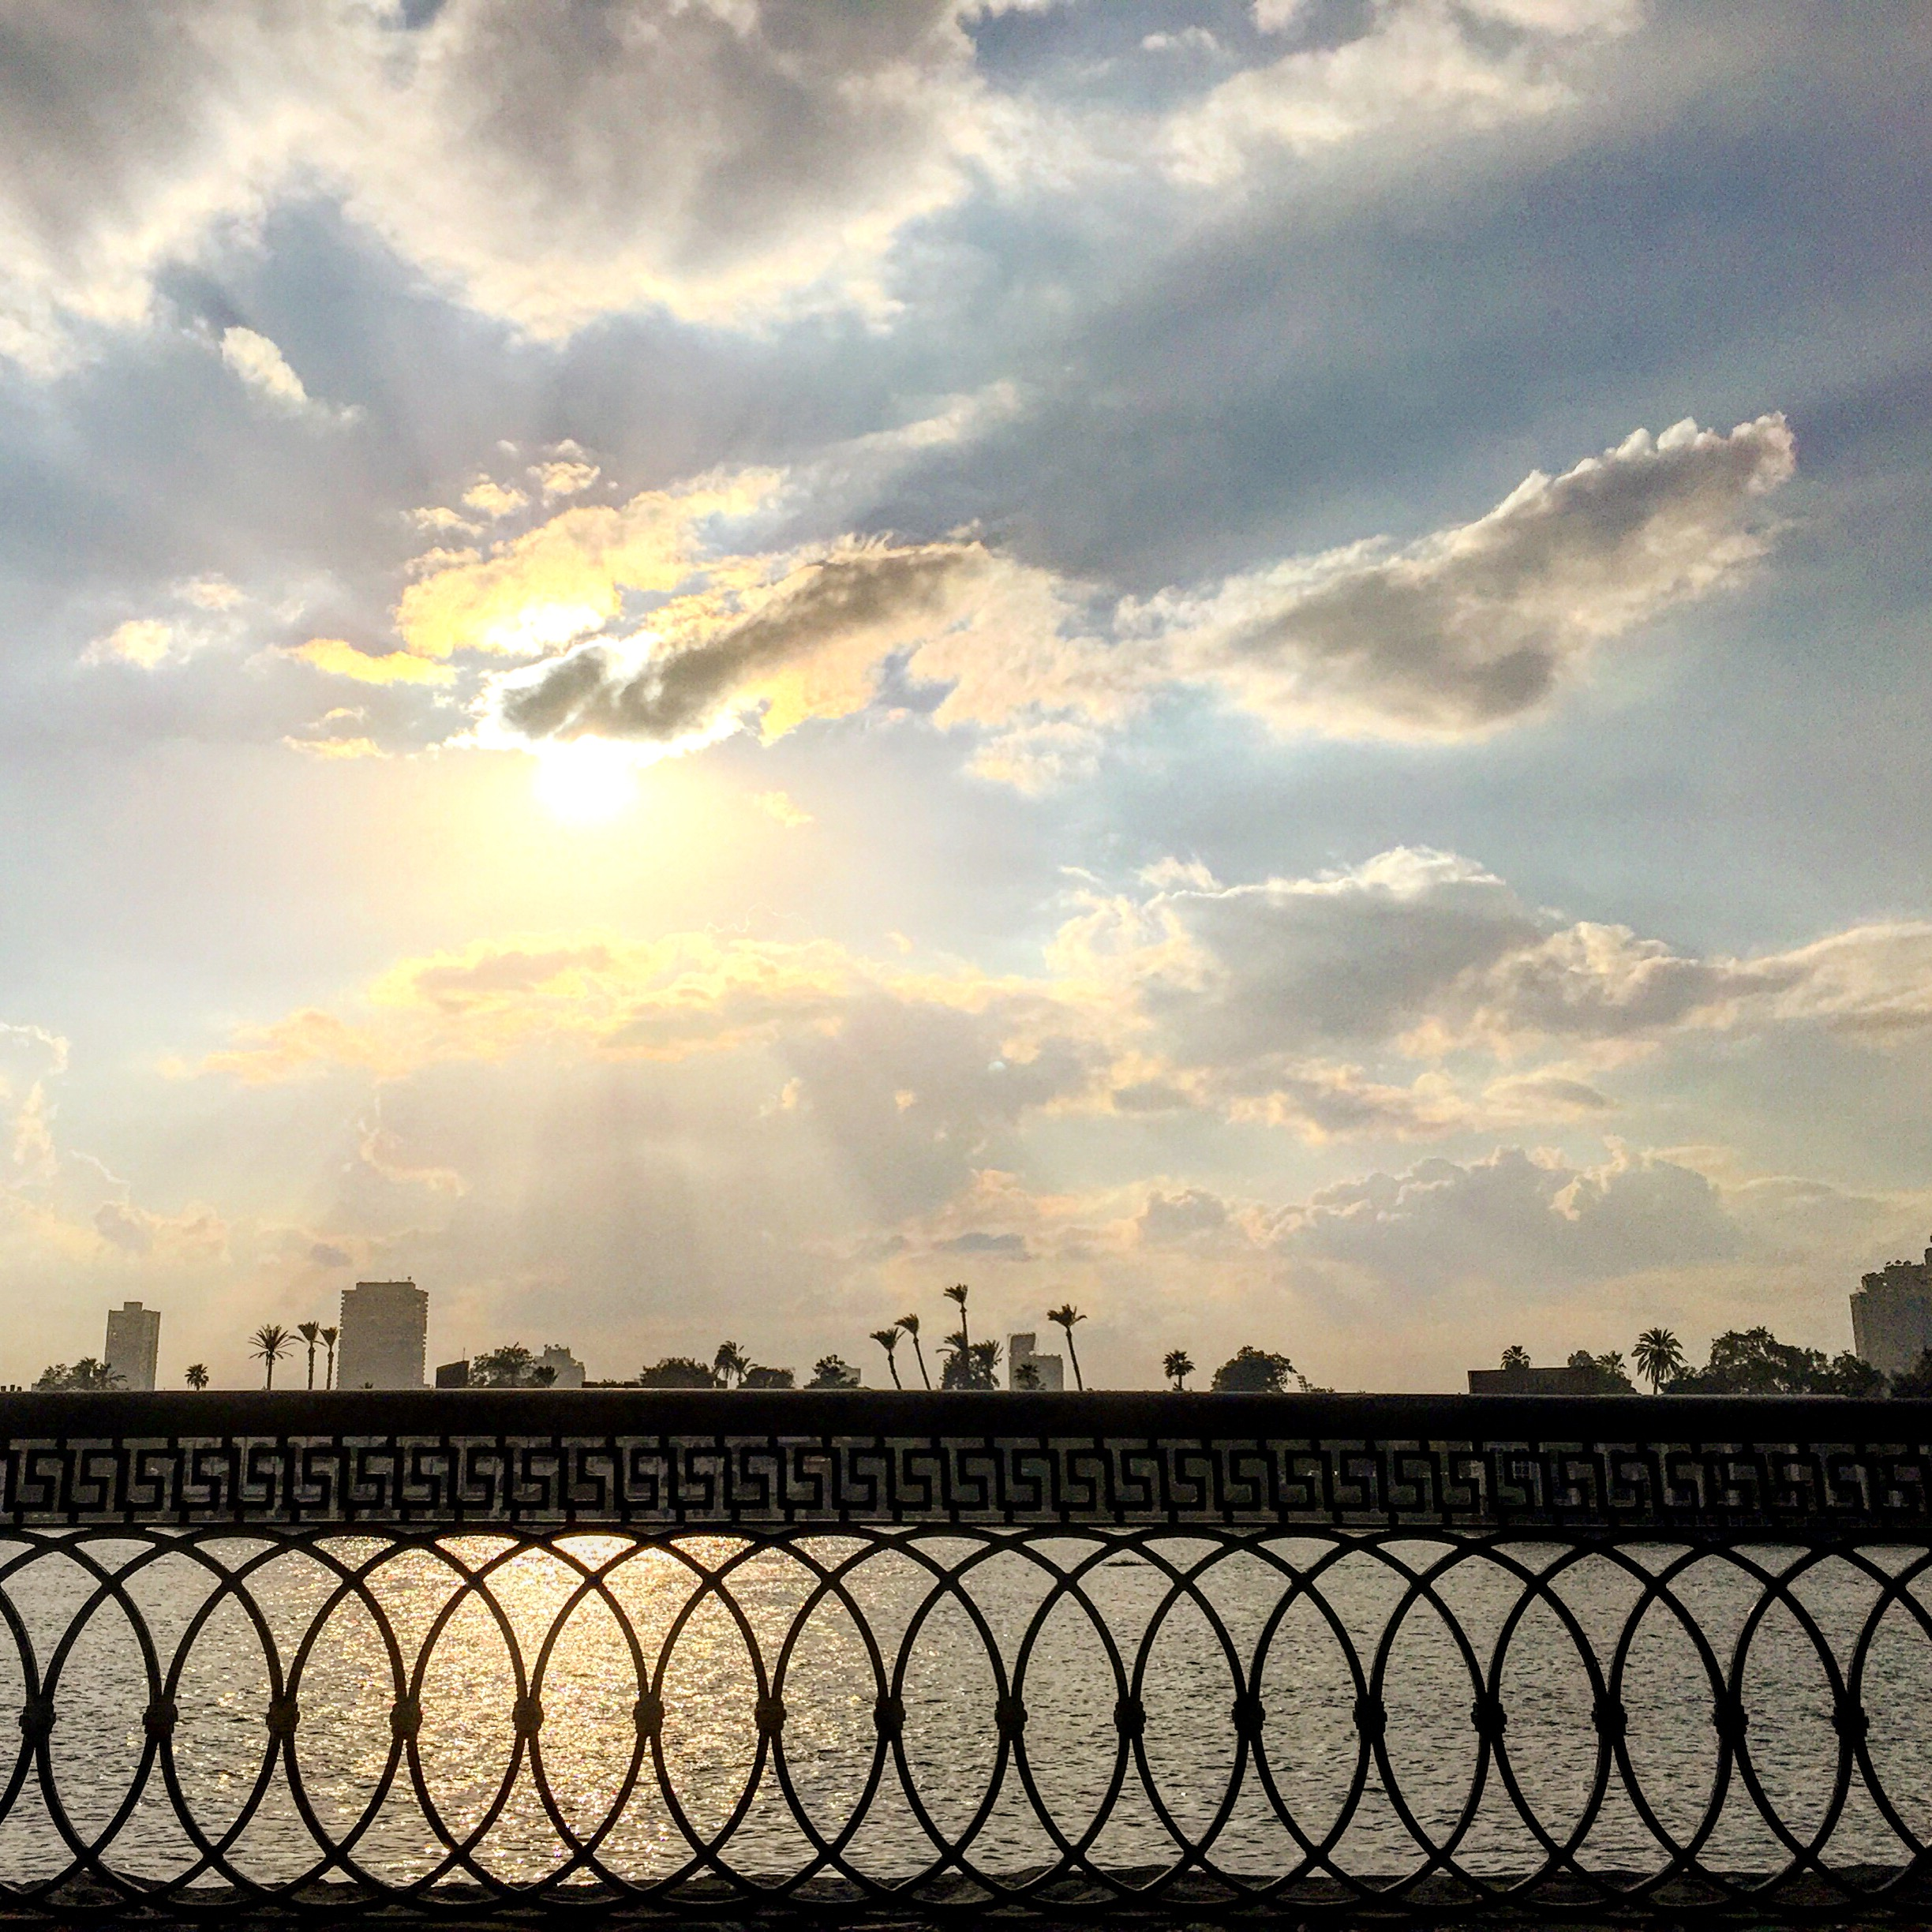 River Nile, Cairo Egypt '15